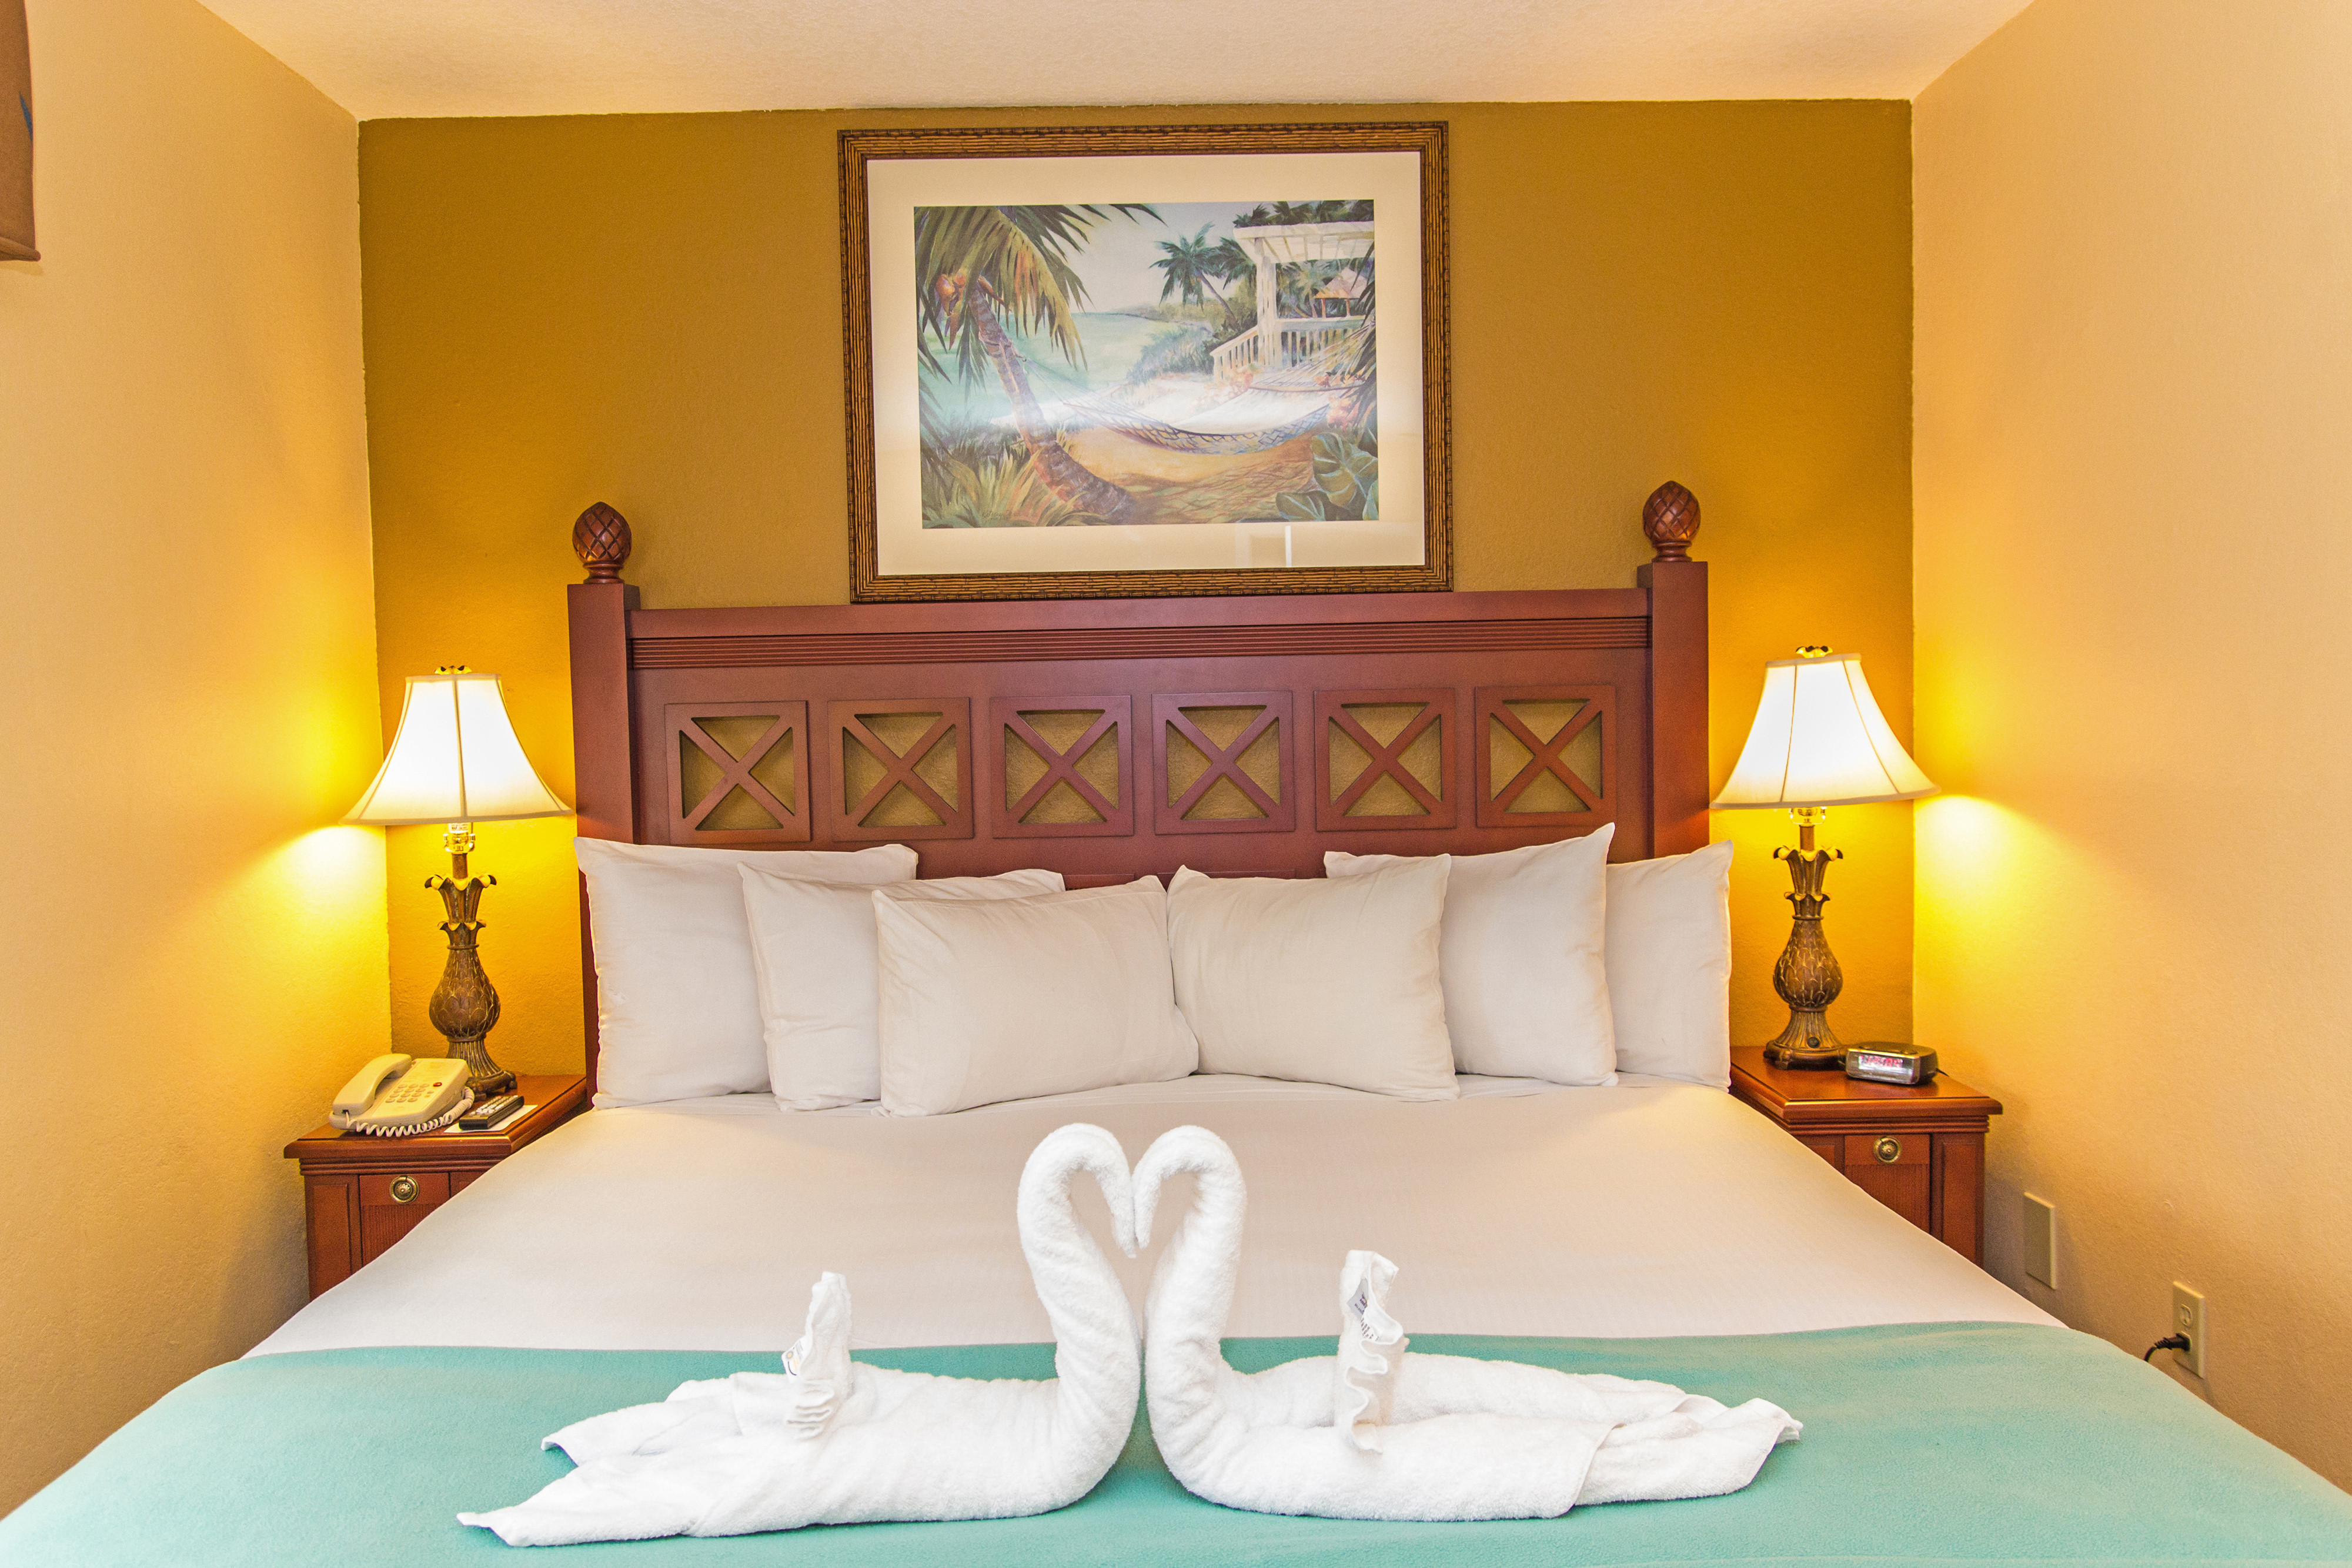 King Bed in One-Bedroom Villa | Westgate Leisure Resort | Westgate Resorts close to Seaworld Orlando FL